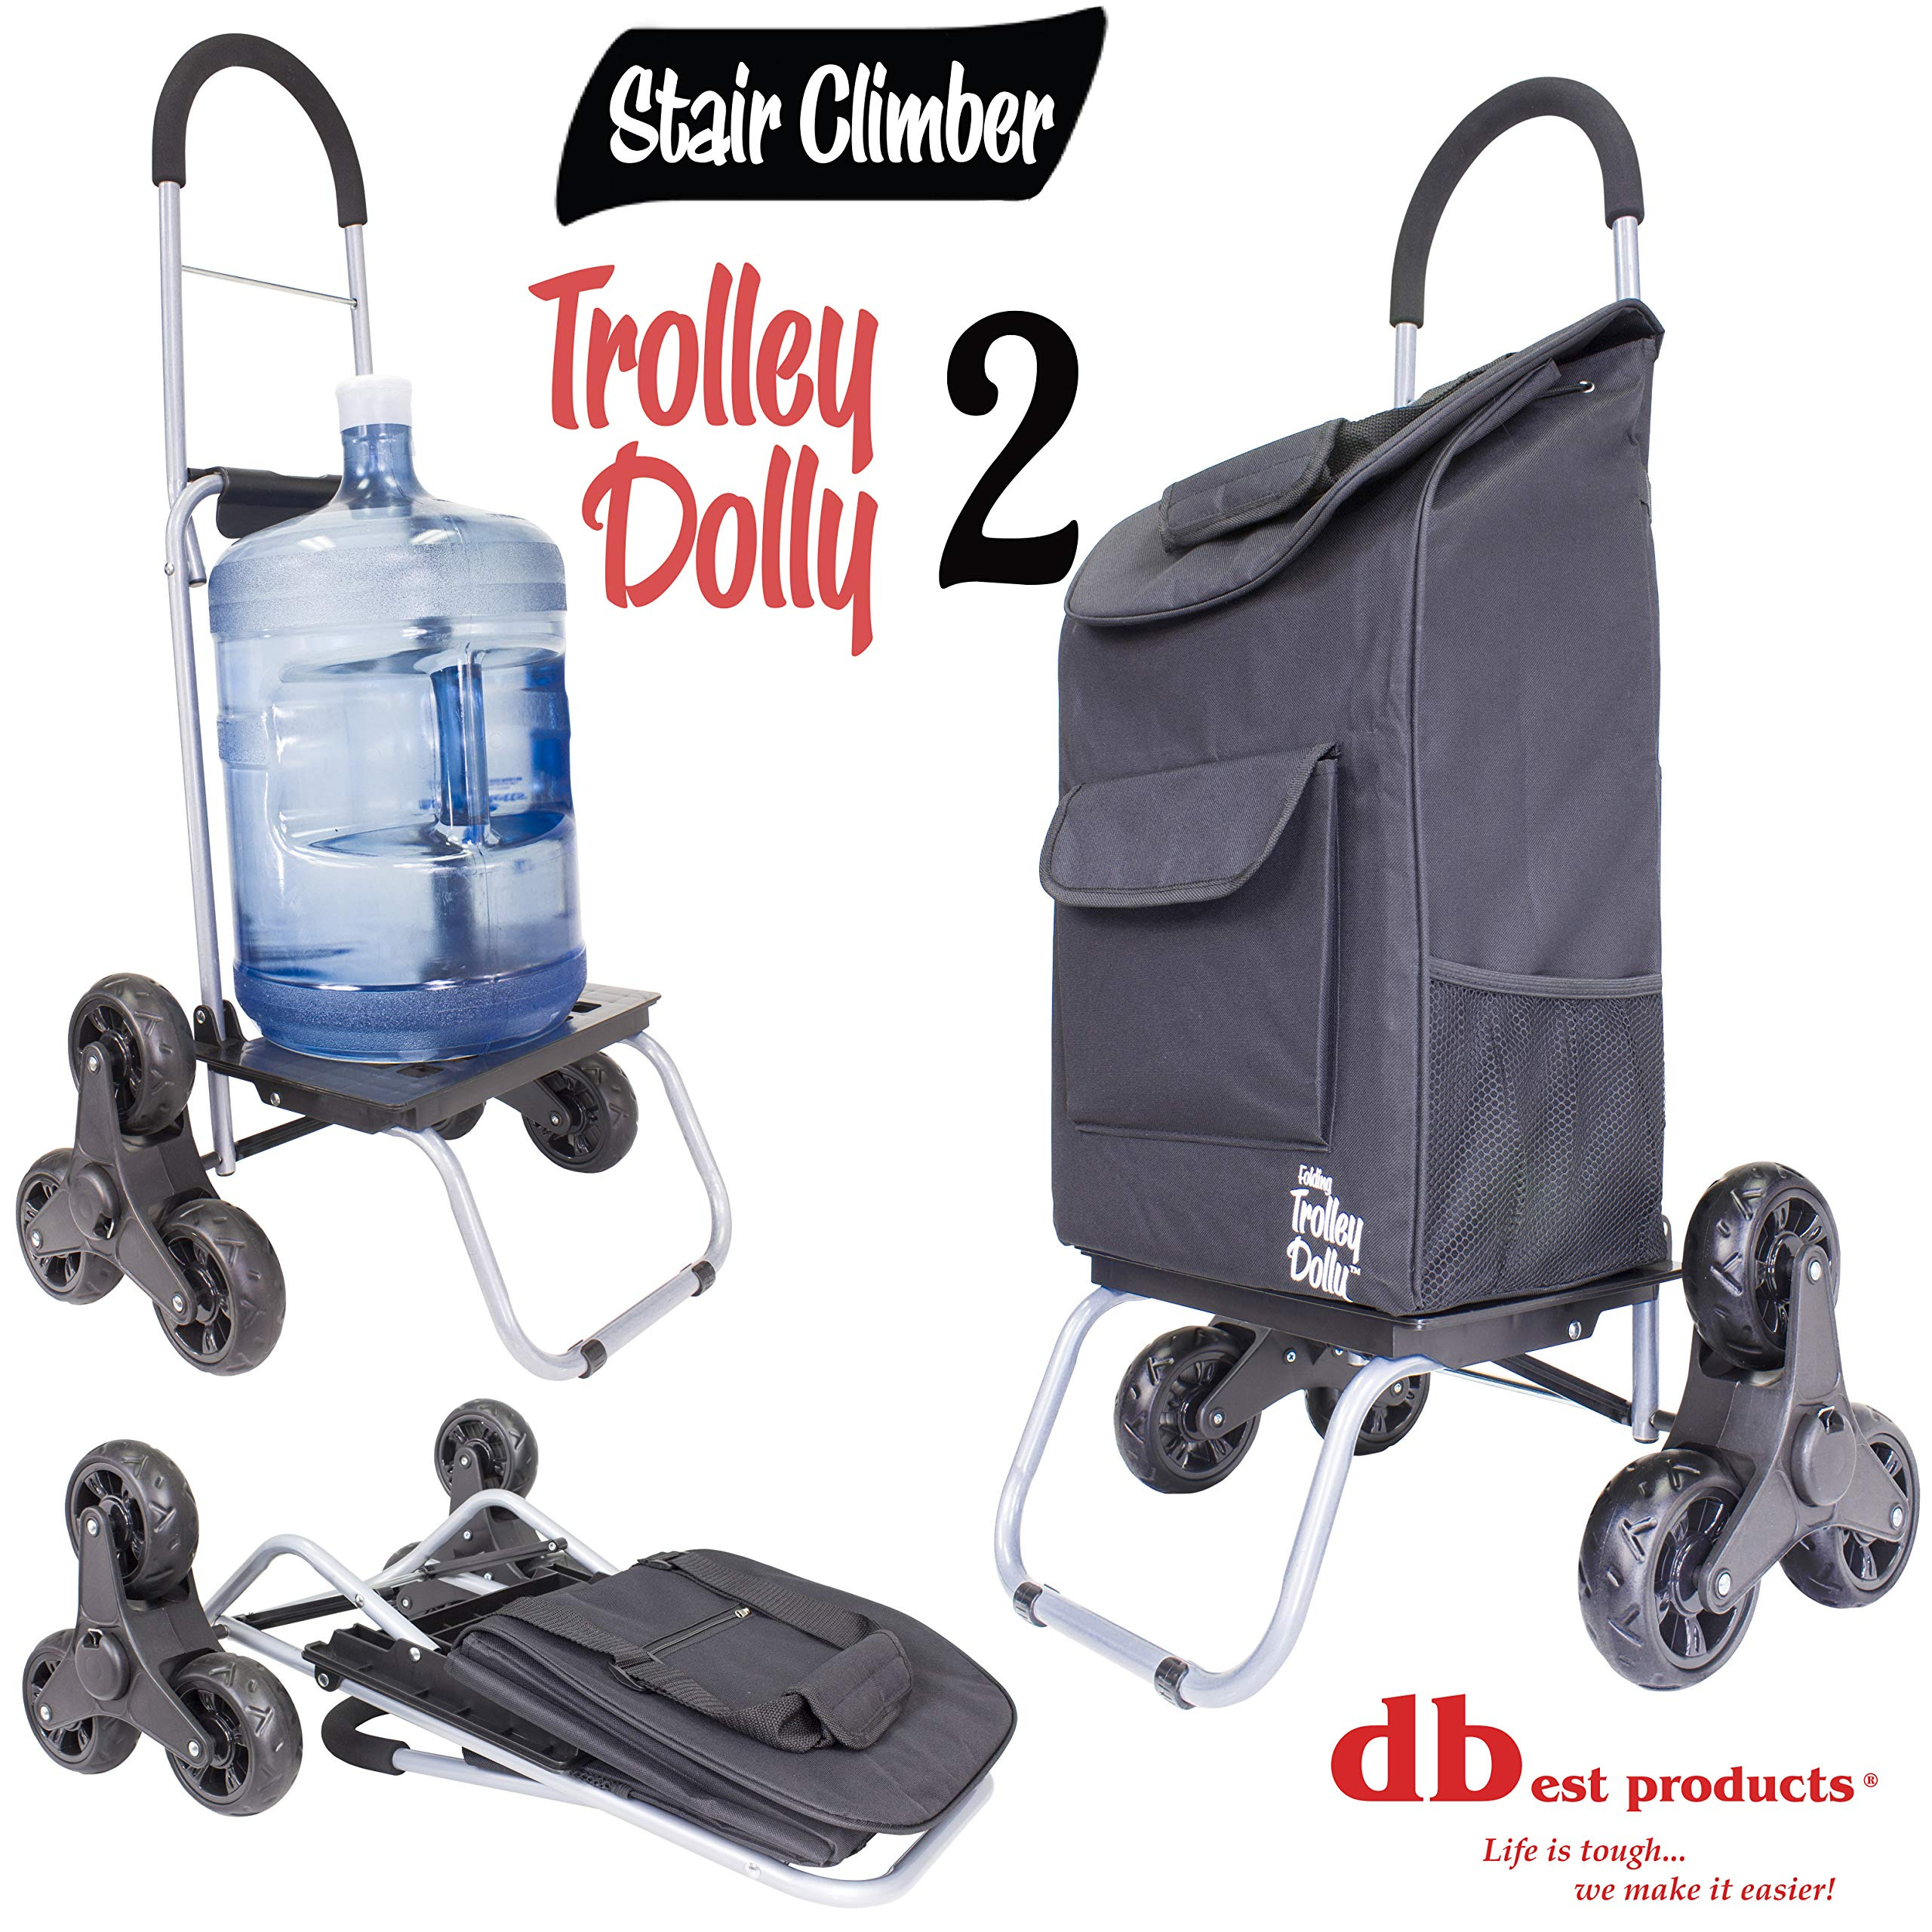 Stair Climber Trolley Dolly 2, Black Grocery Foldable Cart Condo Apartment